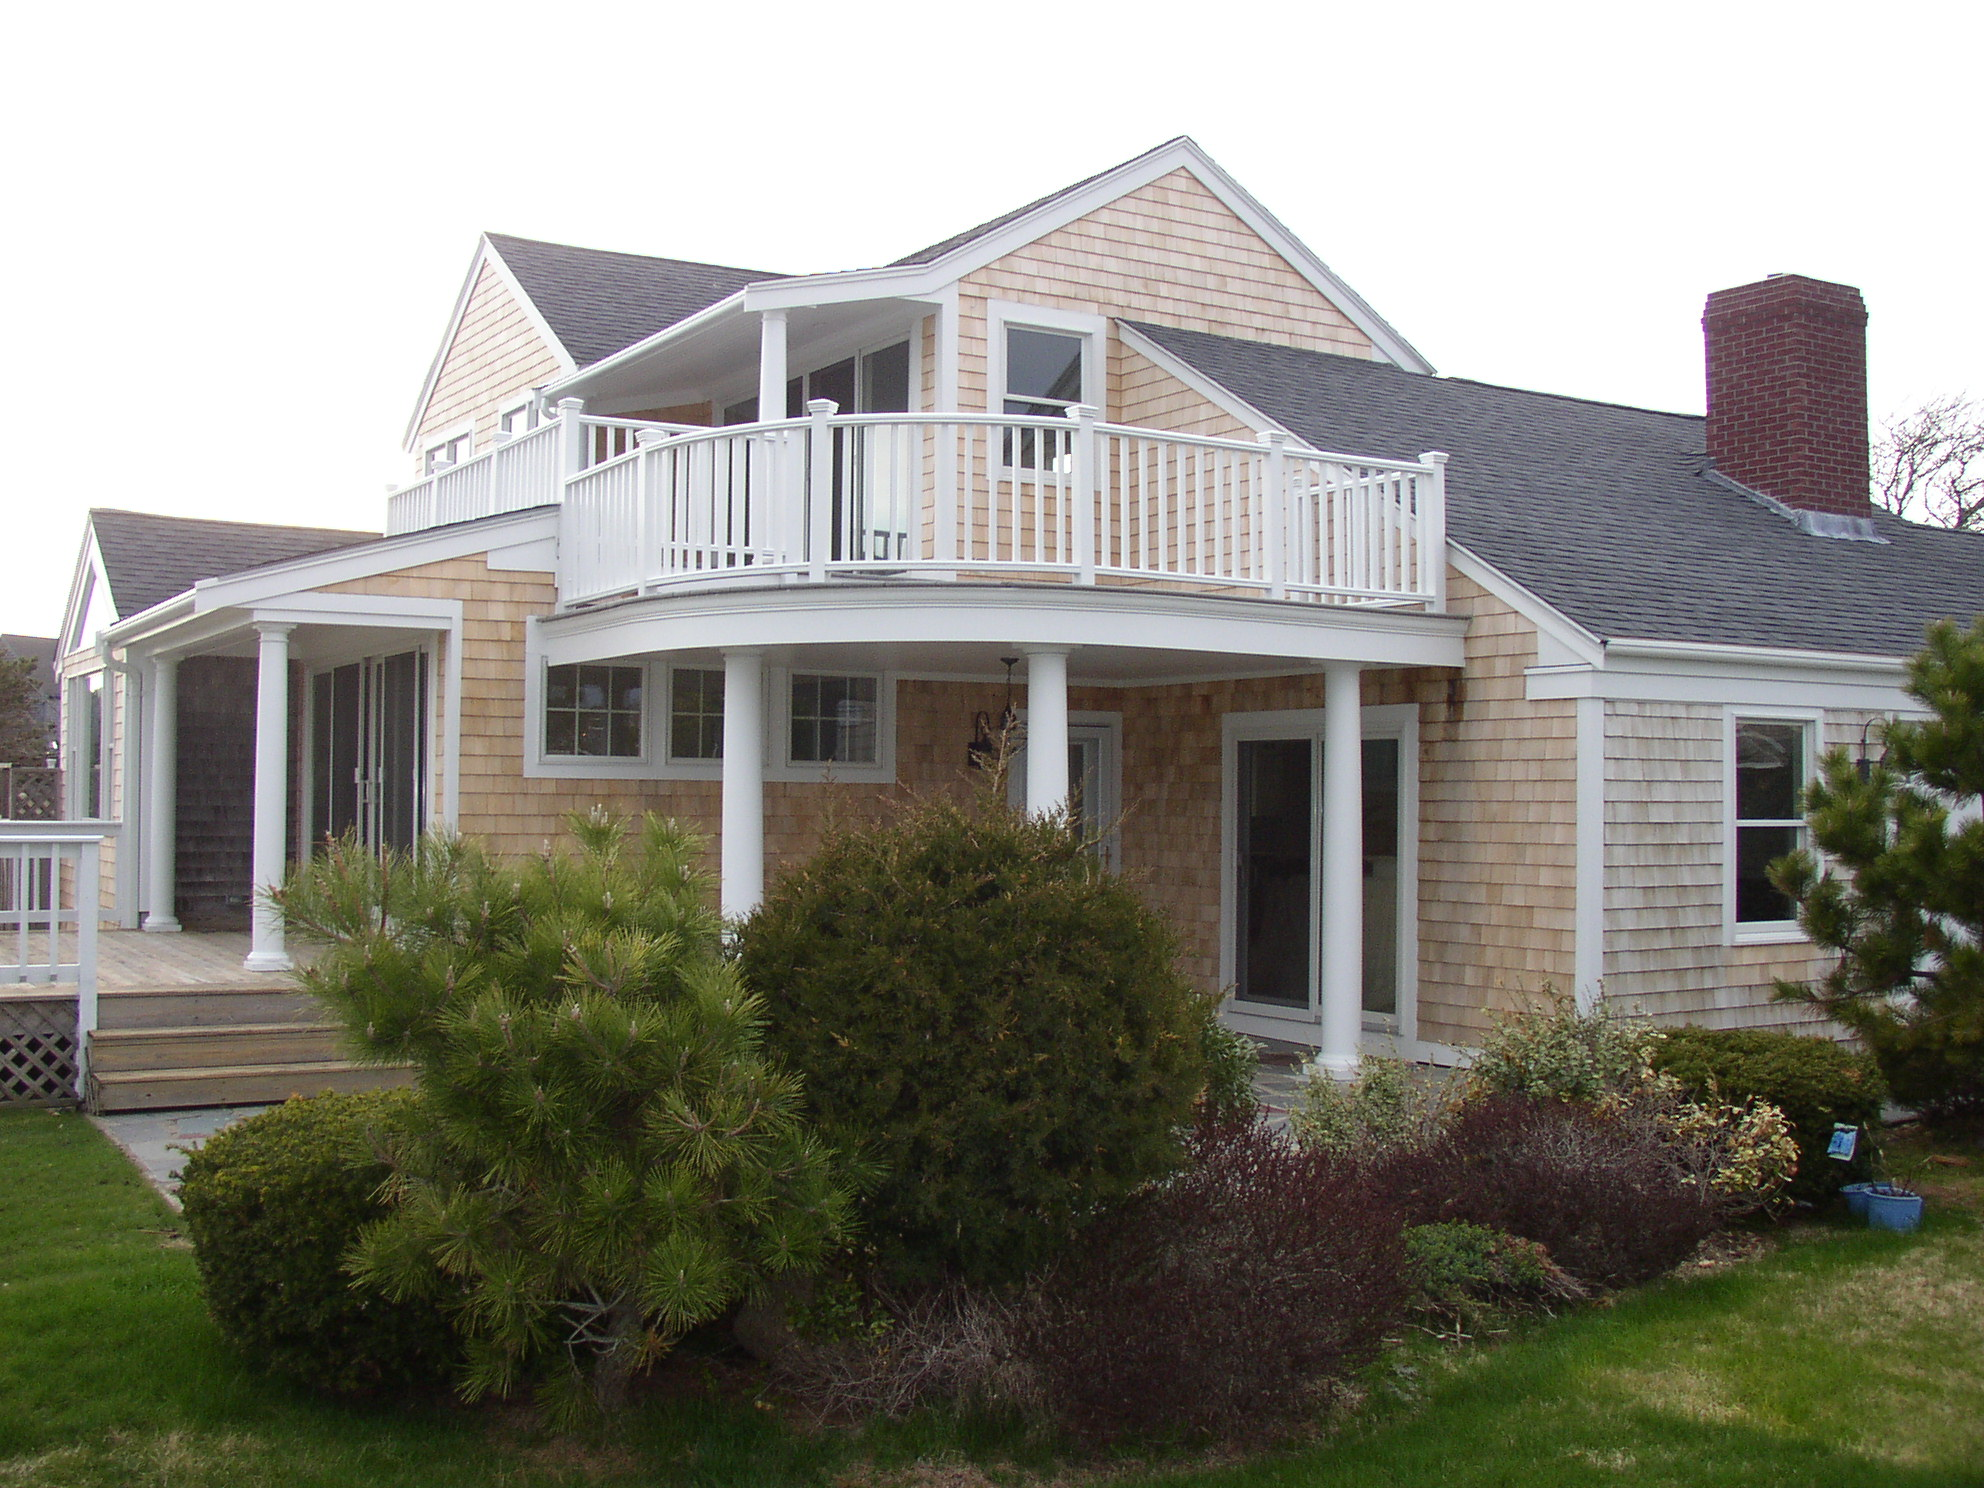 Cape cod home remodeling remodeling contractors for Cape cod house remodel